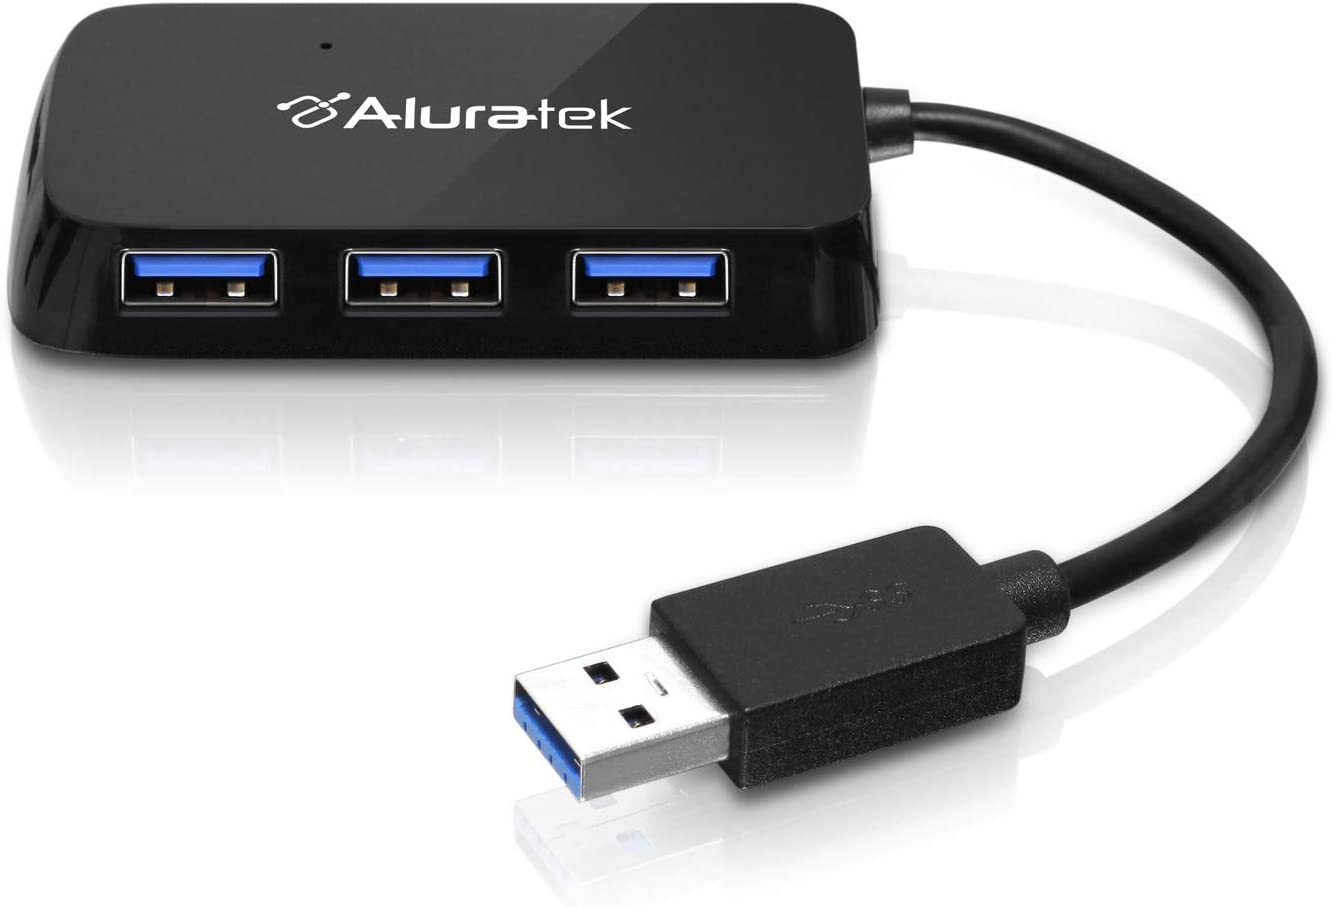 Aluratek 4-Port USB 3.1 SuperSpeed Hub with Attached Cable (AUH2304F)